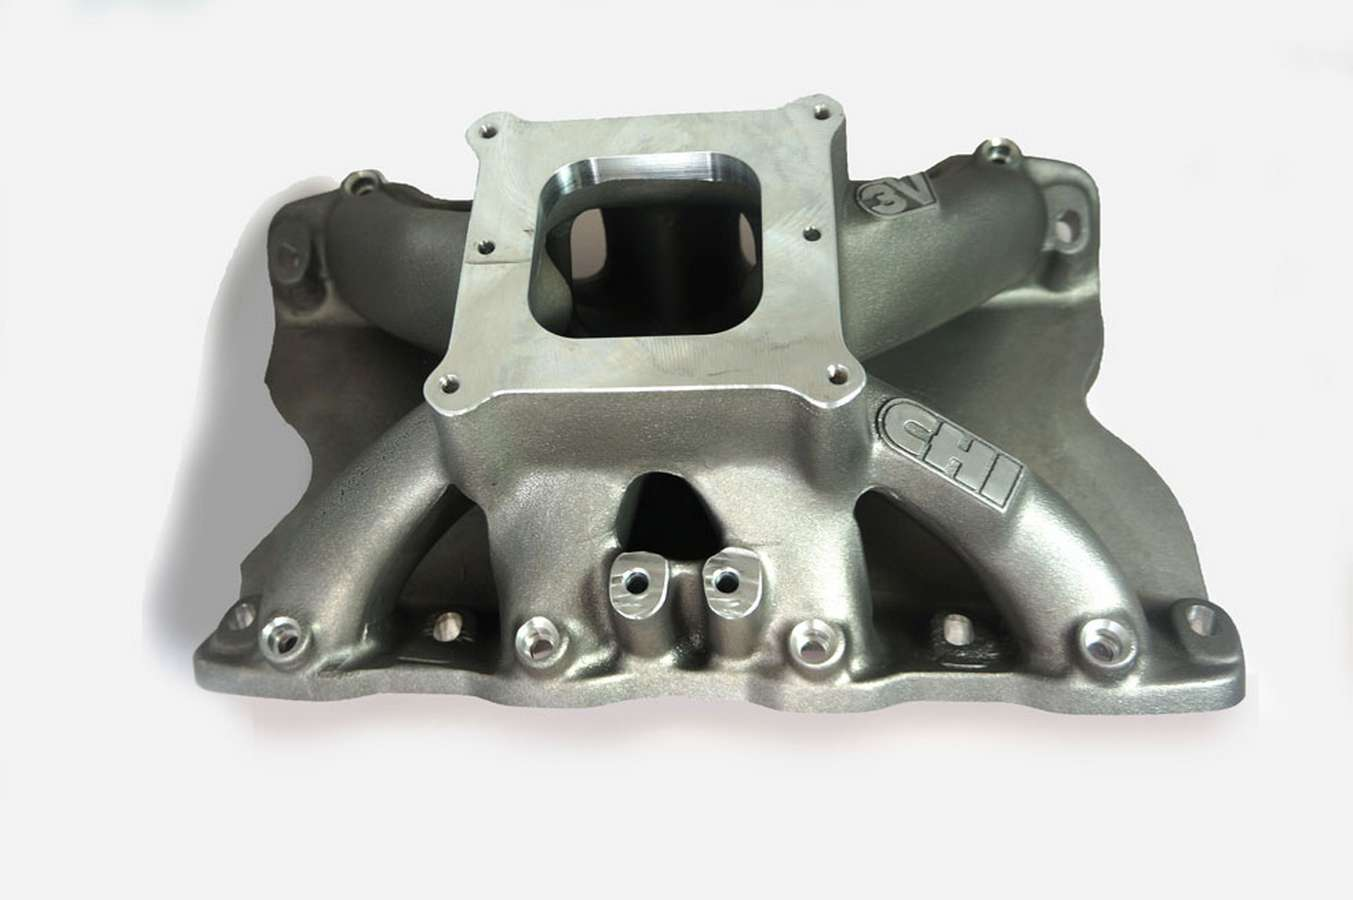 Cylinder Head Innovations INT3V225D9.5W Intake Manifold, 3V, Dominator Flange, 9.500 in Deck Height, Aluminum, Natural, Small Block Ford, Each